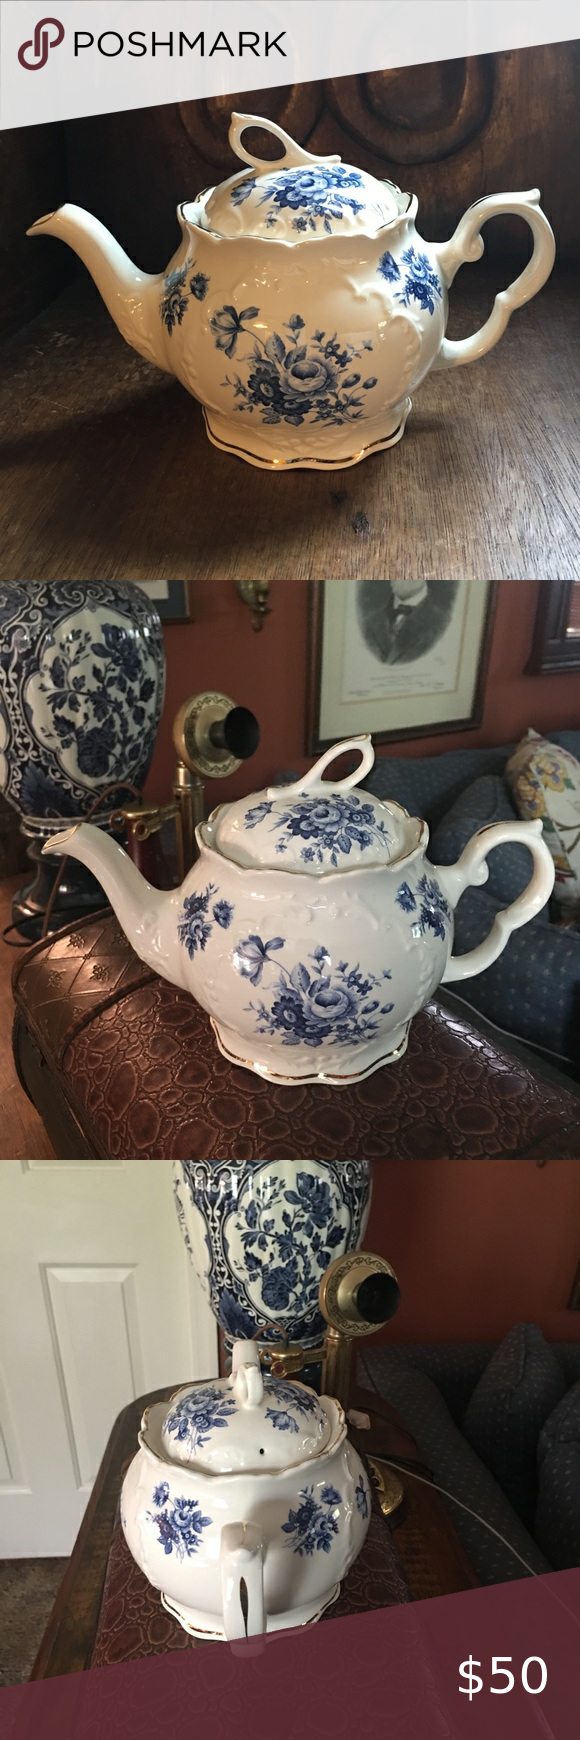 Crown Dorset Staffordshire England Tea Pot Crown Dorset Staffordshire England tea pot. Beautiful blue and cream white with gold trim!! Would be a beautiful gift to anyone or fantastic for collector. Christmas 🌲 is coming!! Crown Dorset Kitchen Coffee & Tea Accessories